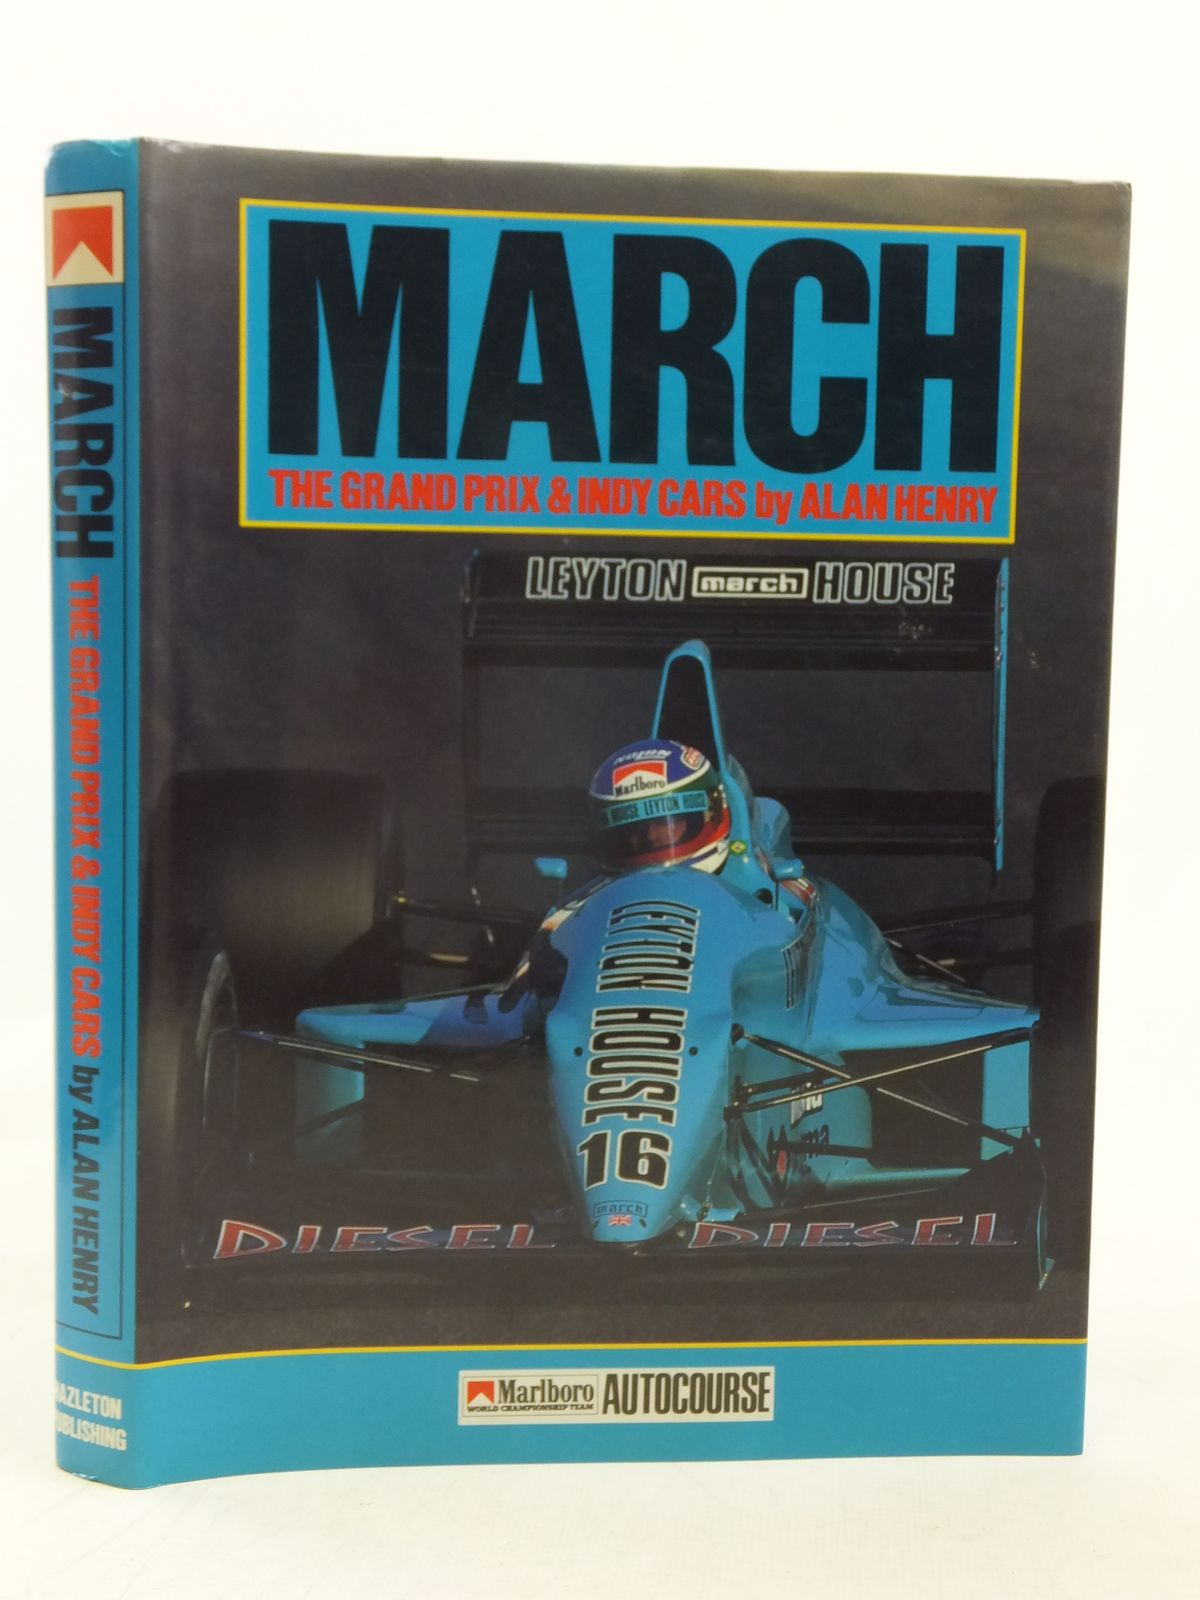 march the grand prix indy cars written by henry alan stock code 1810775 stella rose 39 s books. Black Bedroom Furniture Sets. Home Design Ideas